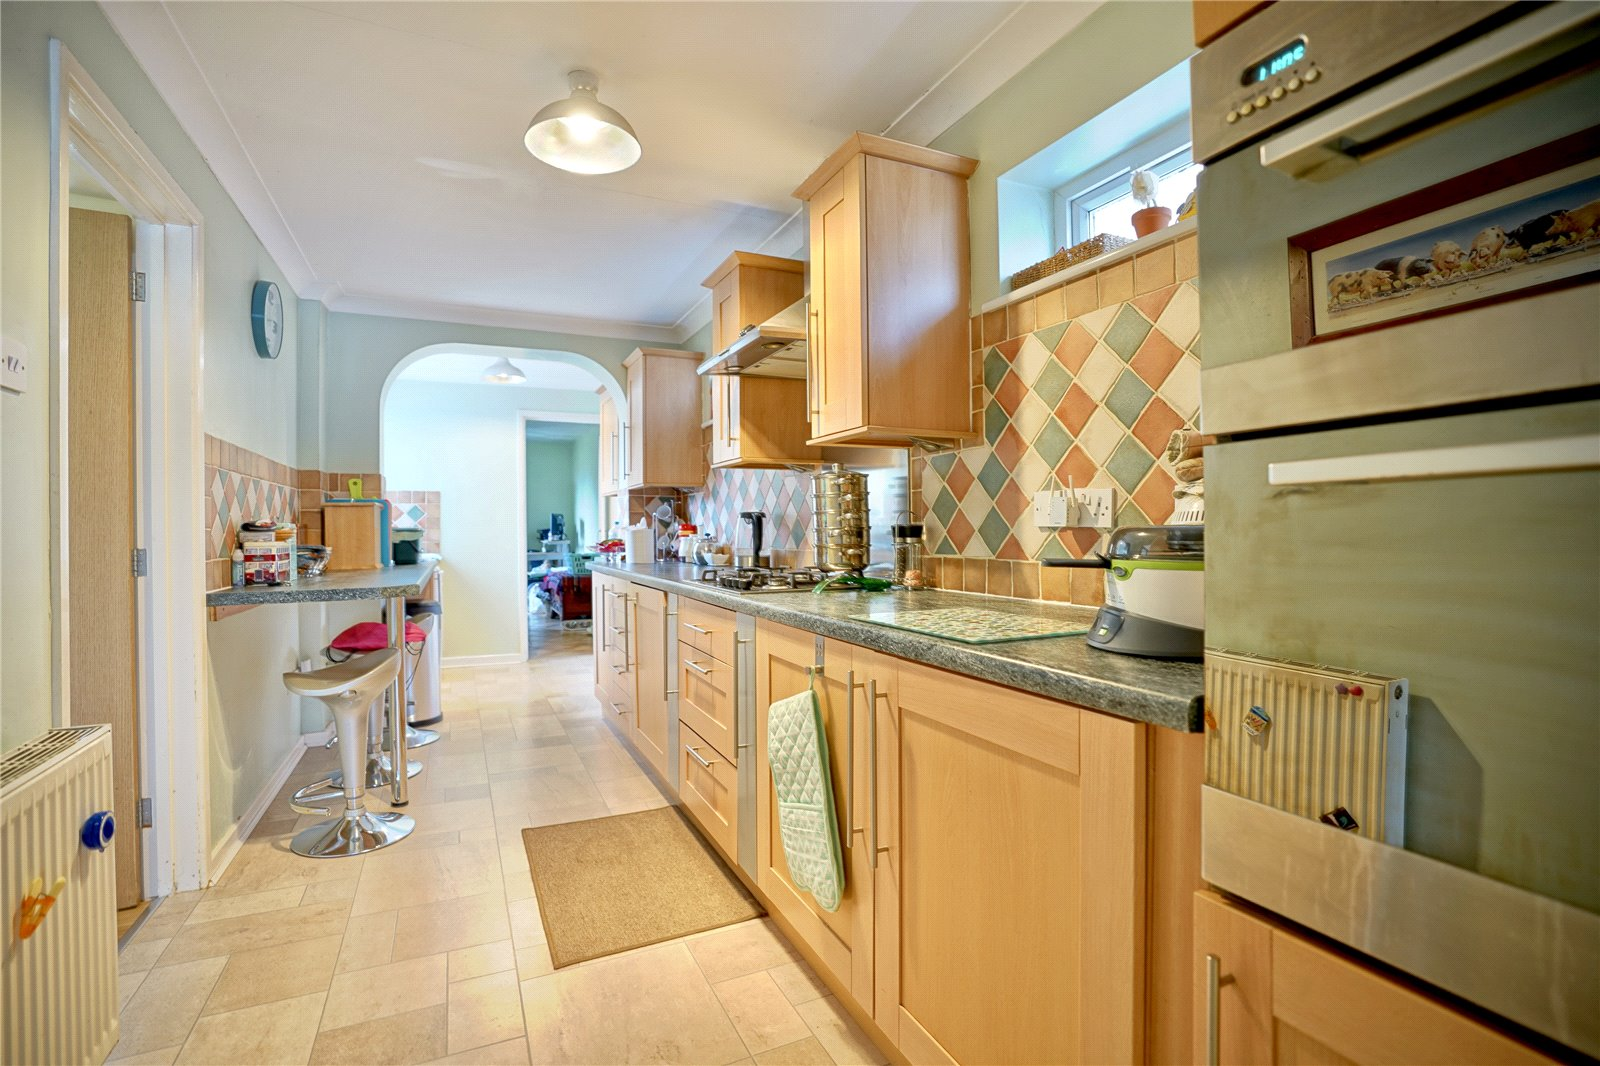 4 bed house for sale in Eaton Socon, PE19 8HU  - Property Image 4